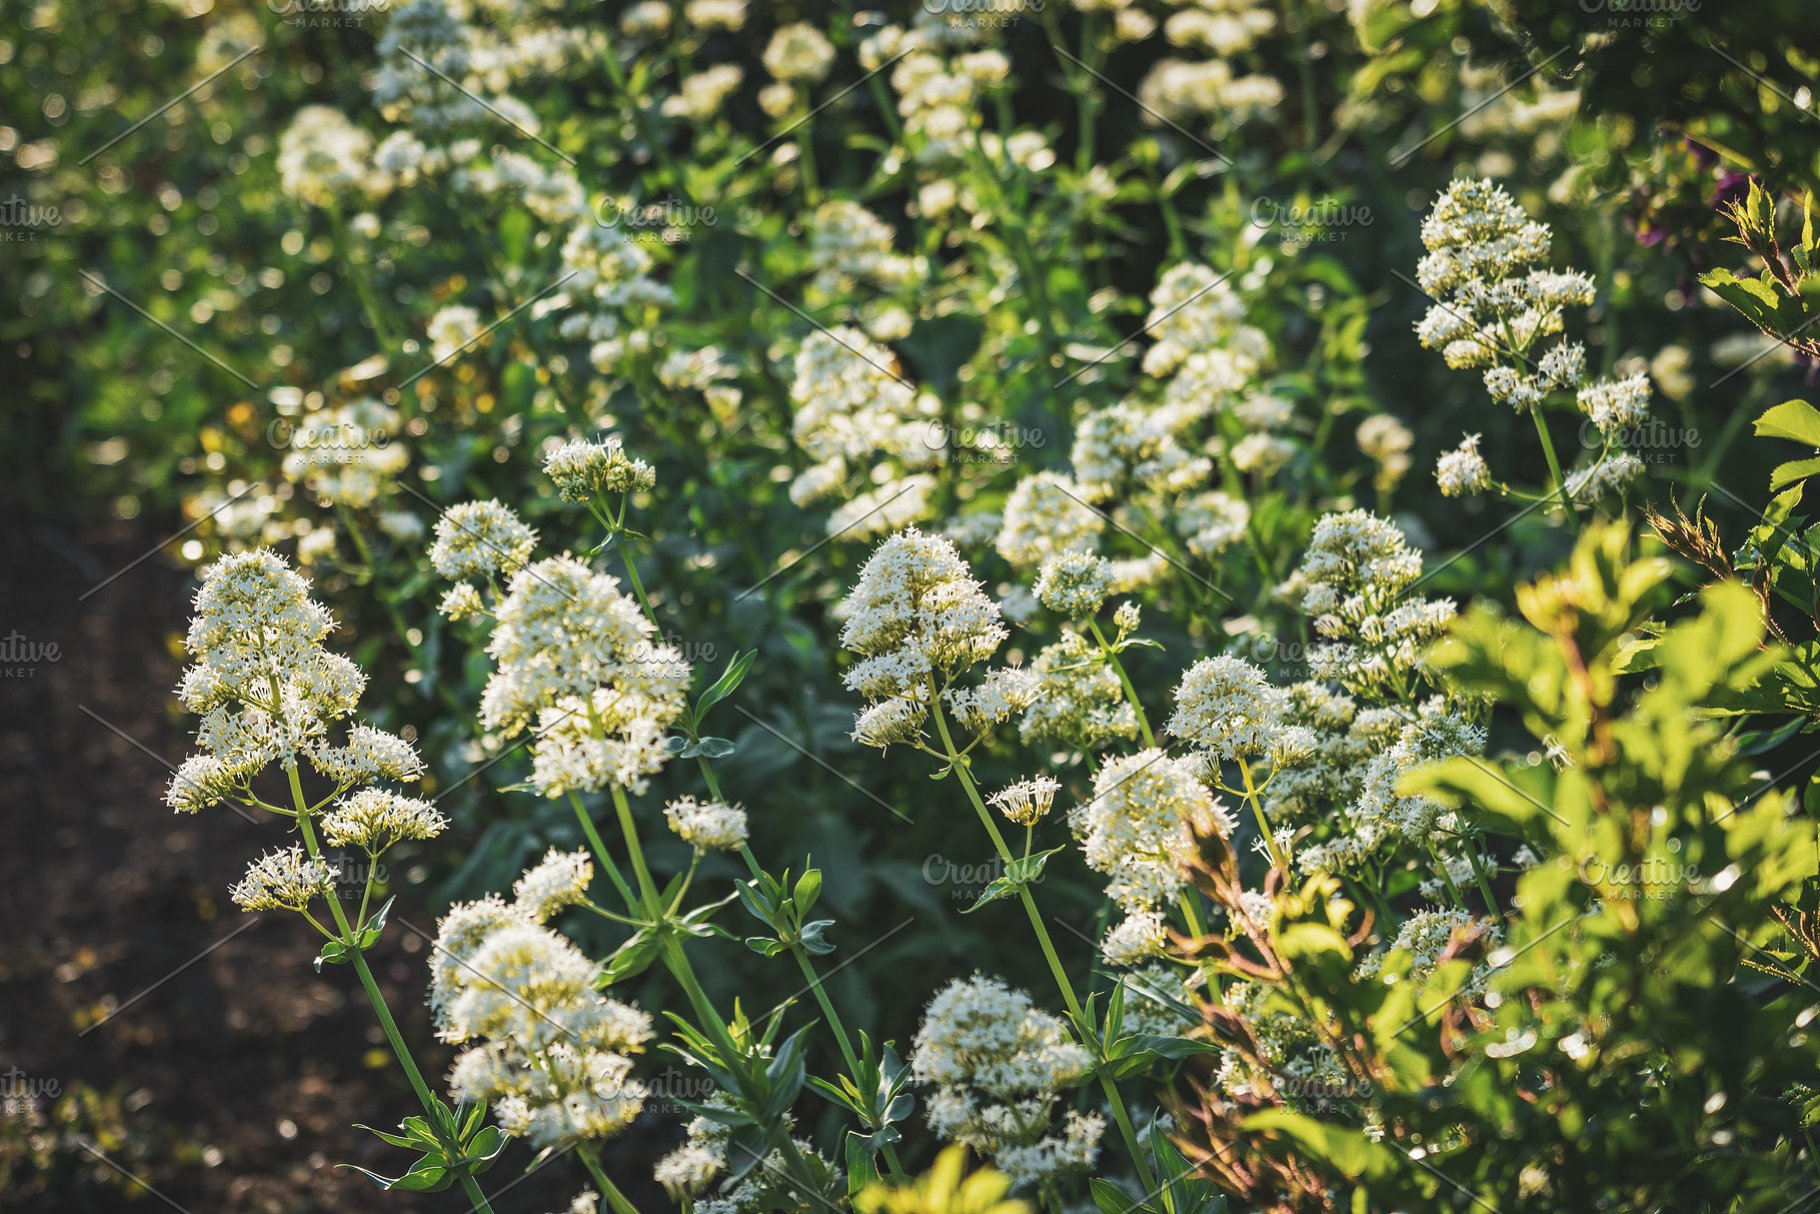 White Flower Bushes High Quality Nature Stock Photos Creative